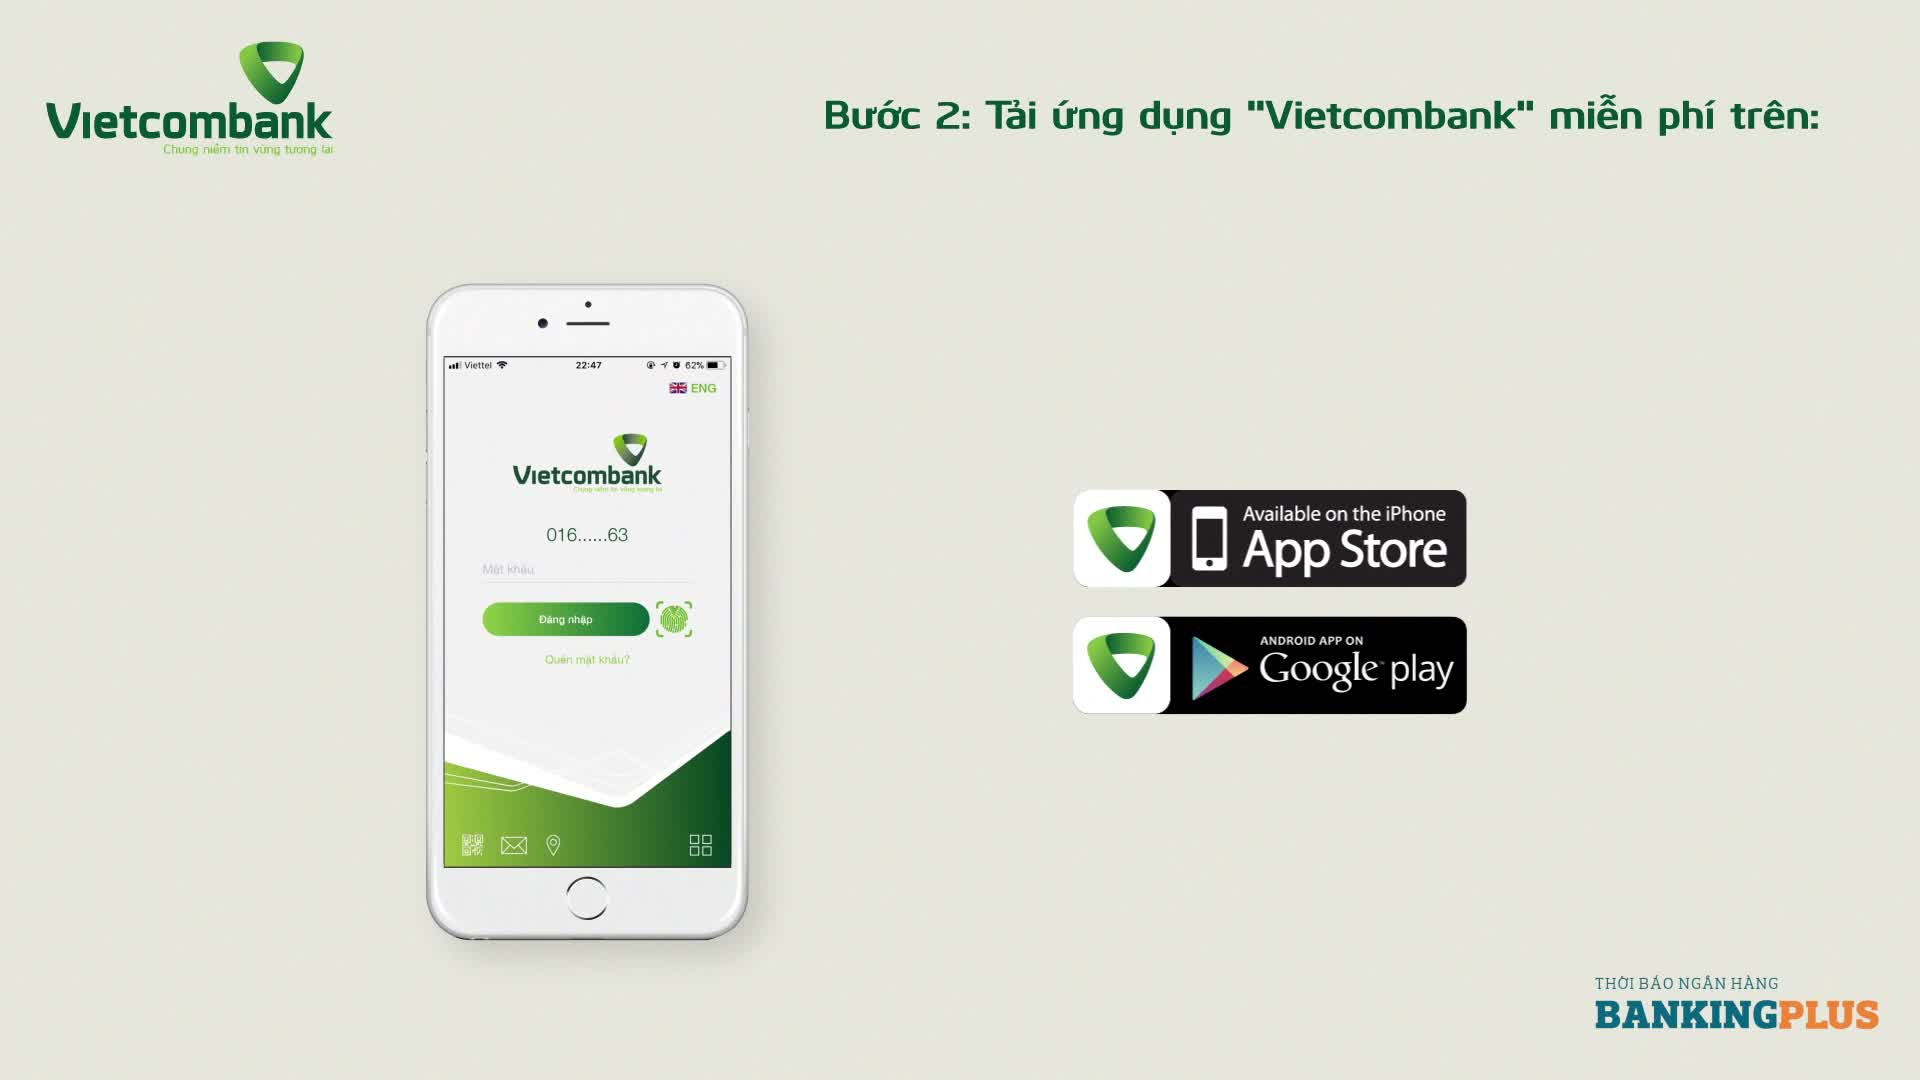 Hướng dẫn sử dụng thanh toán hóa đơn thông qua ứng dụng VCB - Mobile B@nking